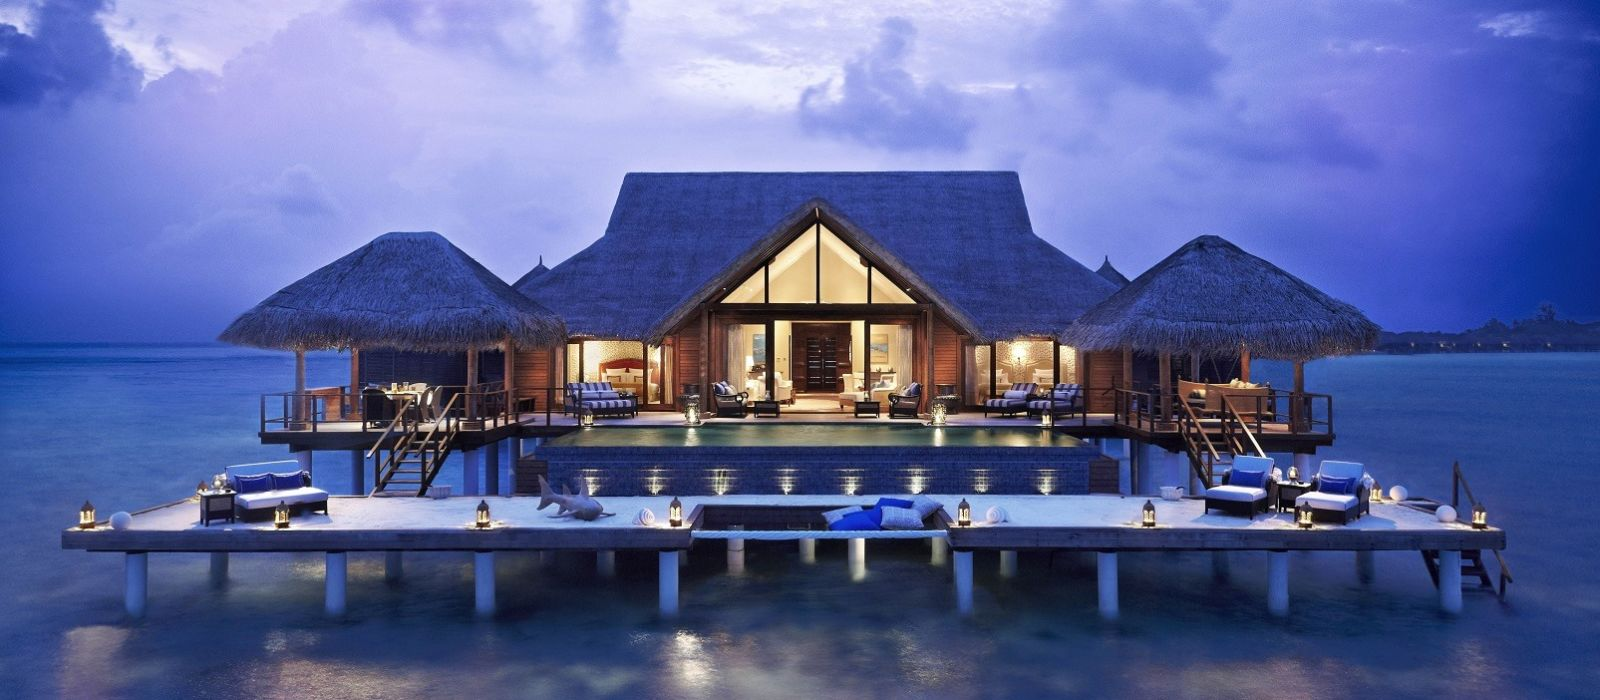 Hotel Taj Exotica Resorts & Spa Maldives